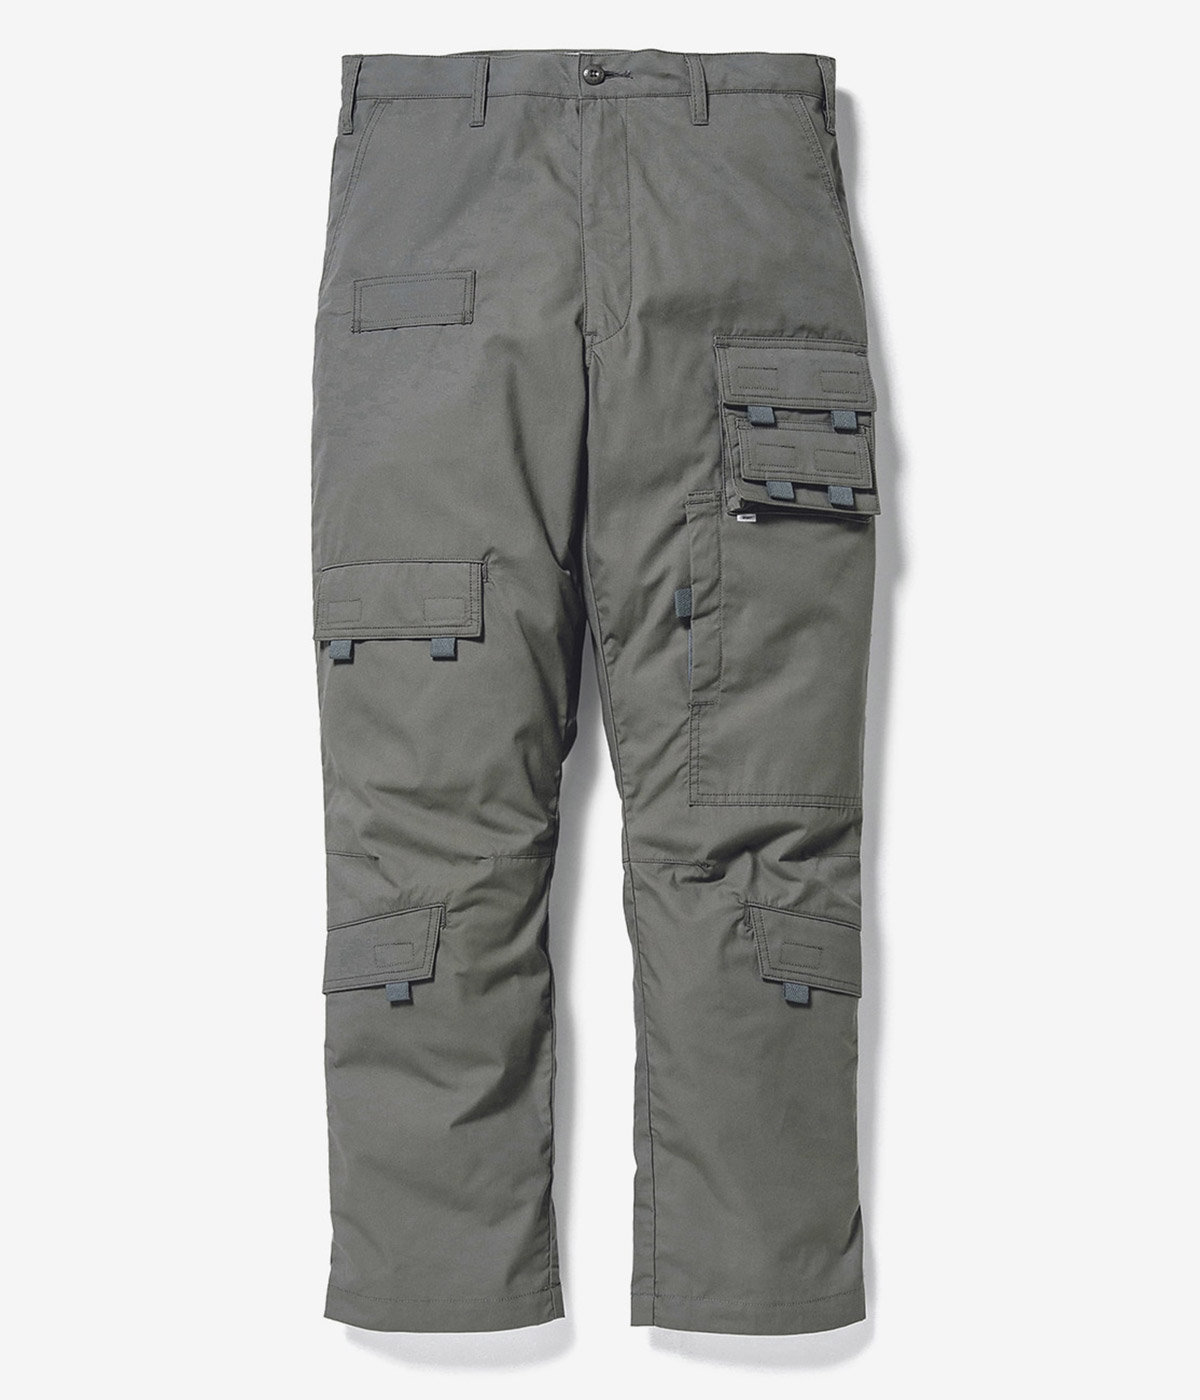 MODULAR / TROUSERS. COTTON. WEATHER